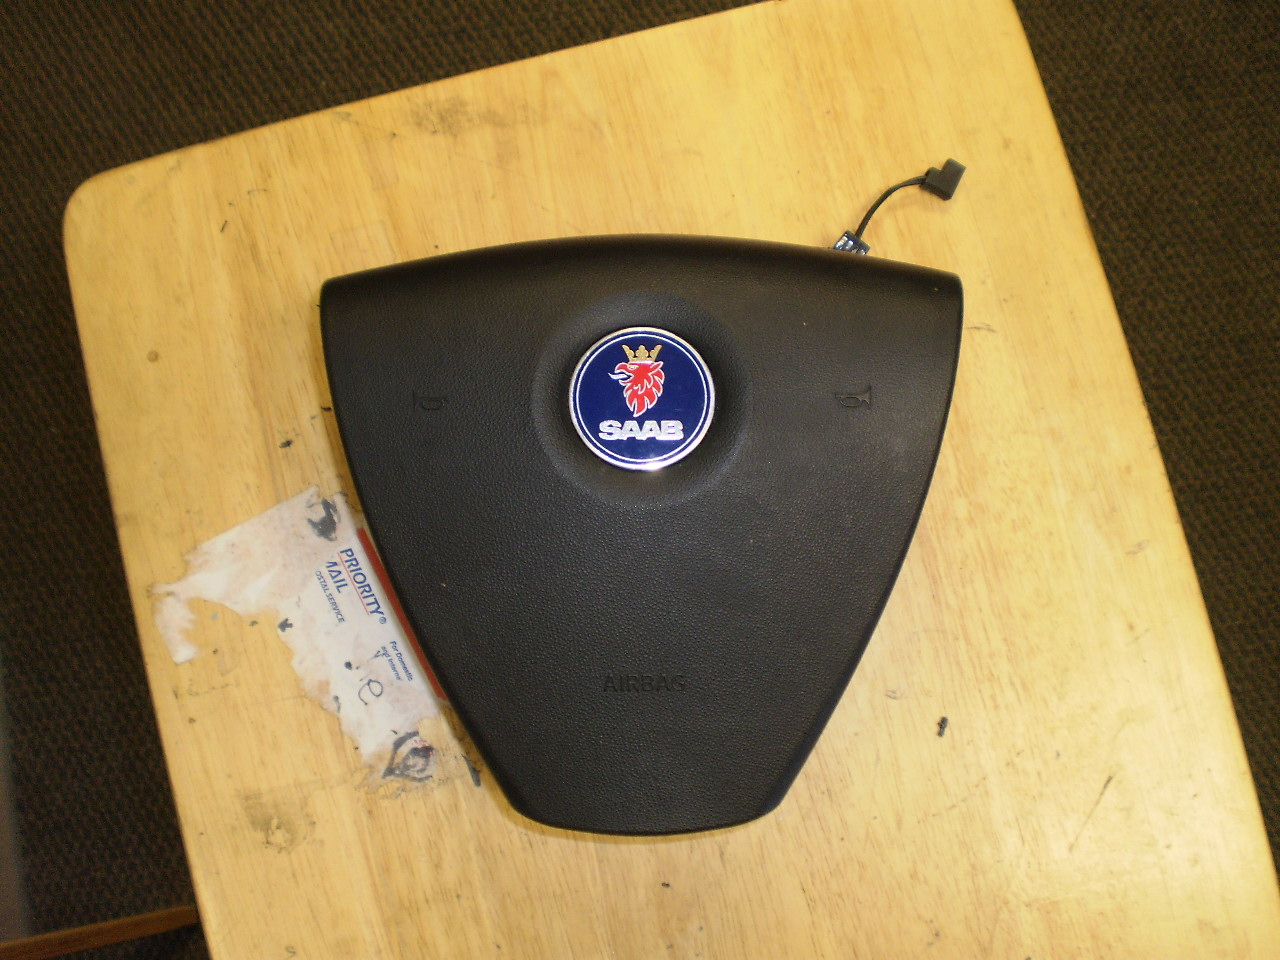 9-3 Saab Airbags 03 up 05